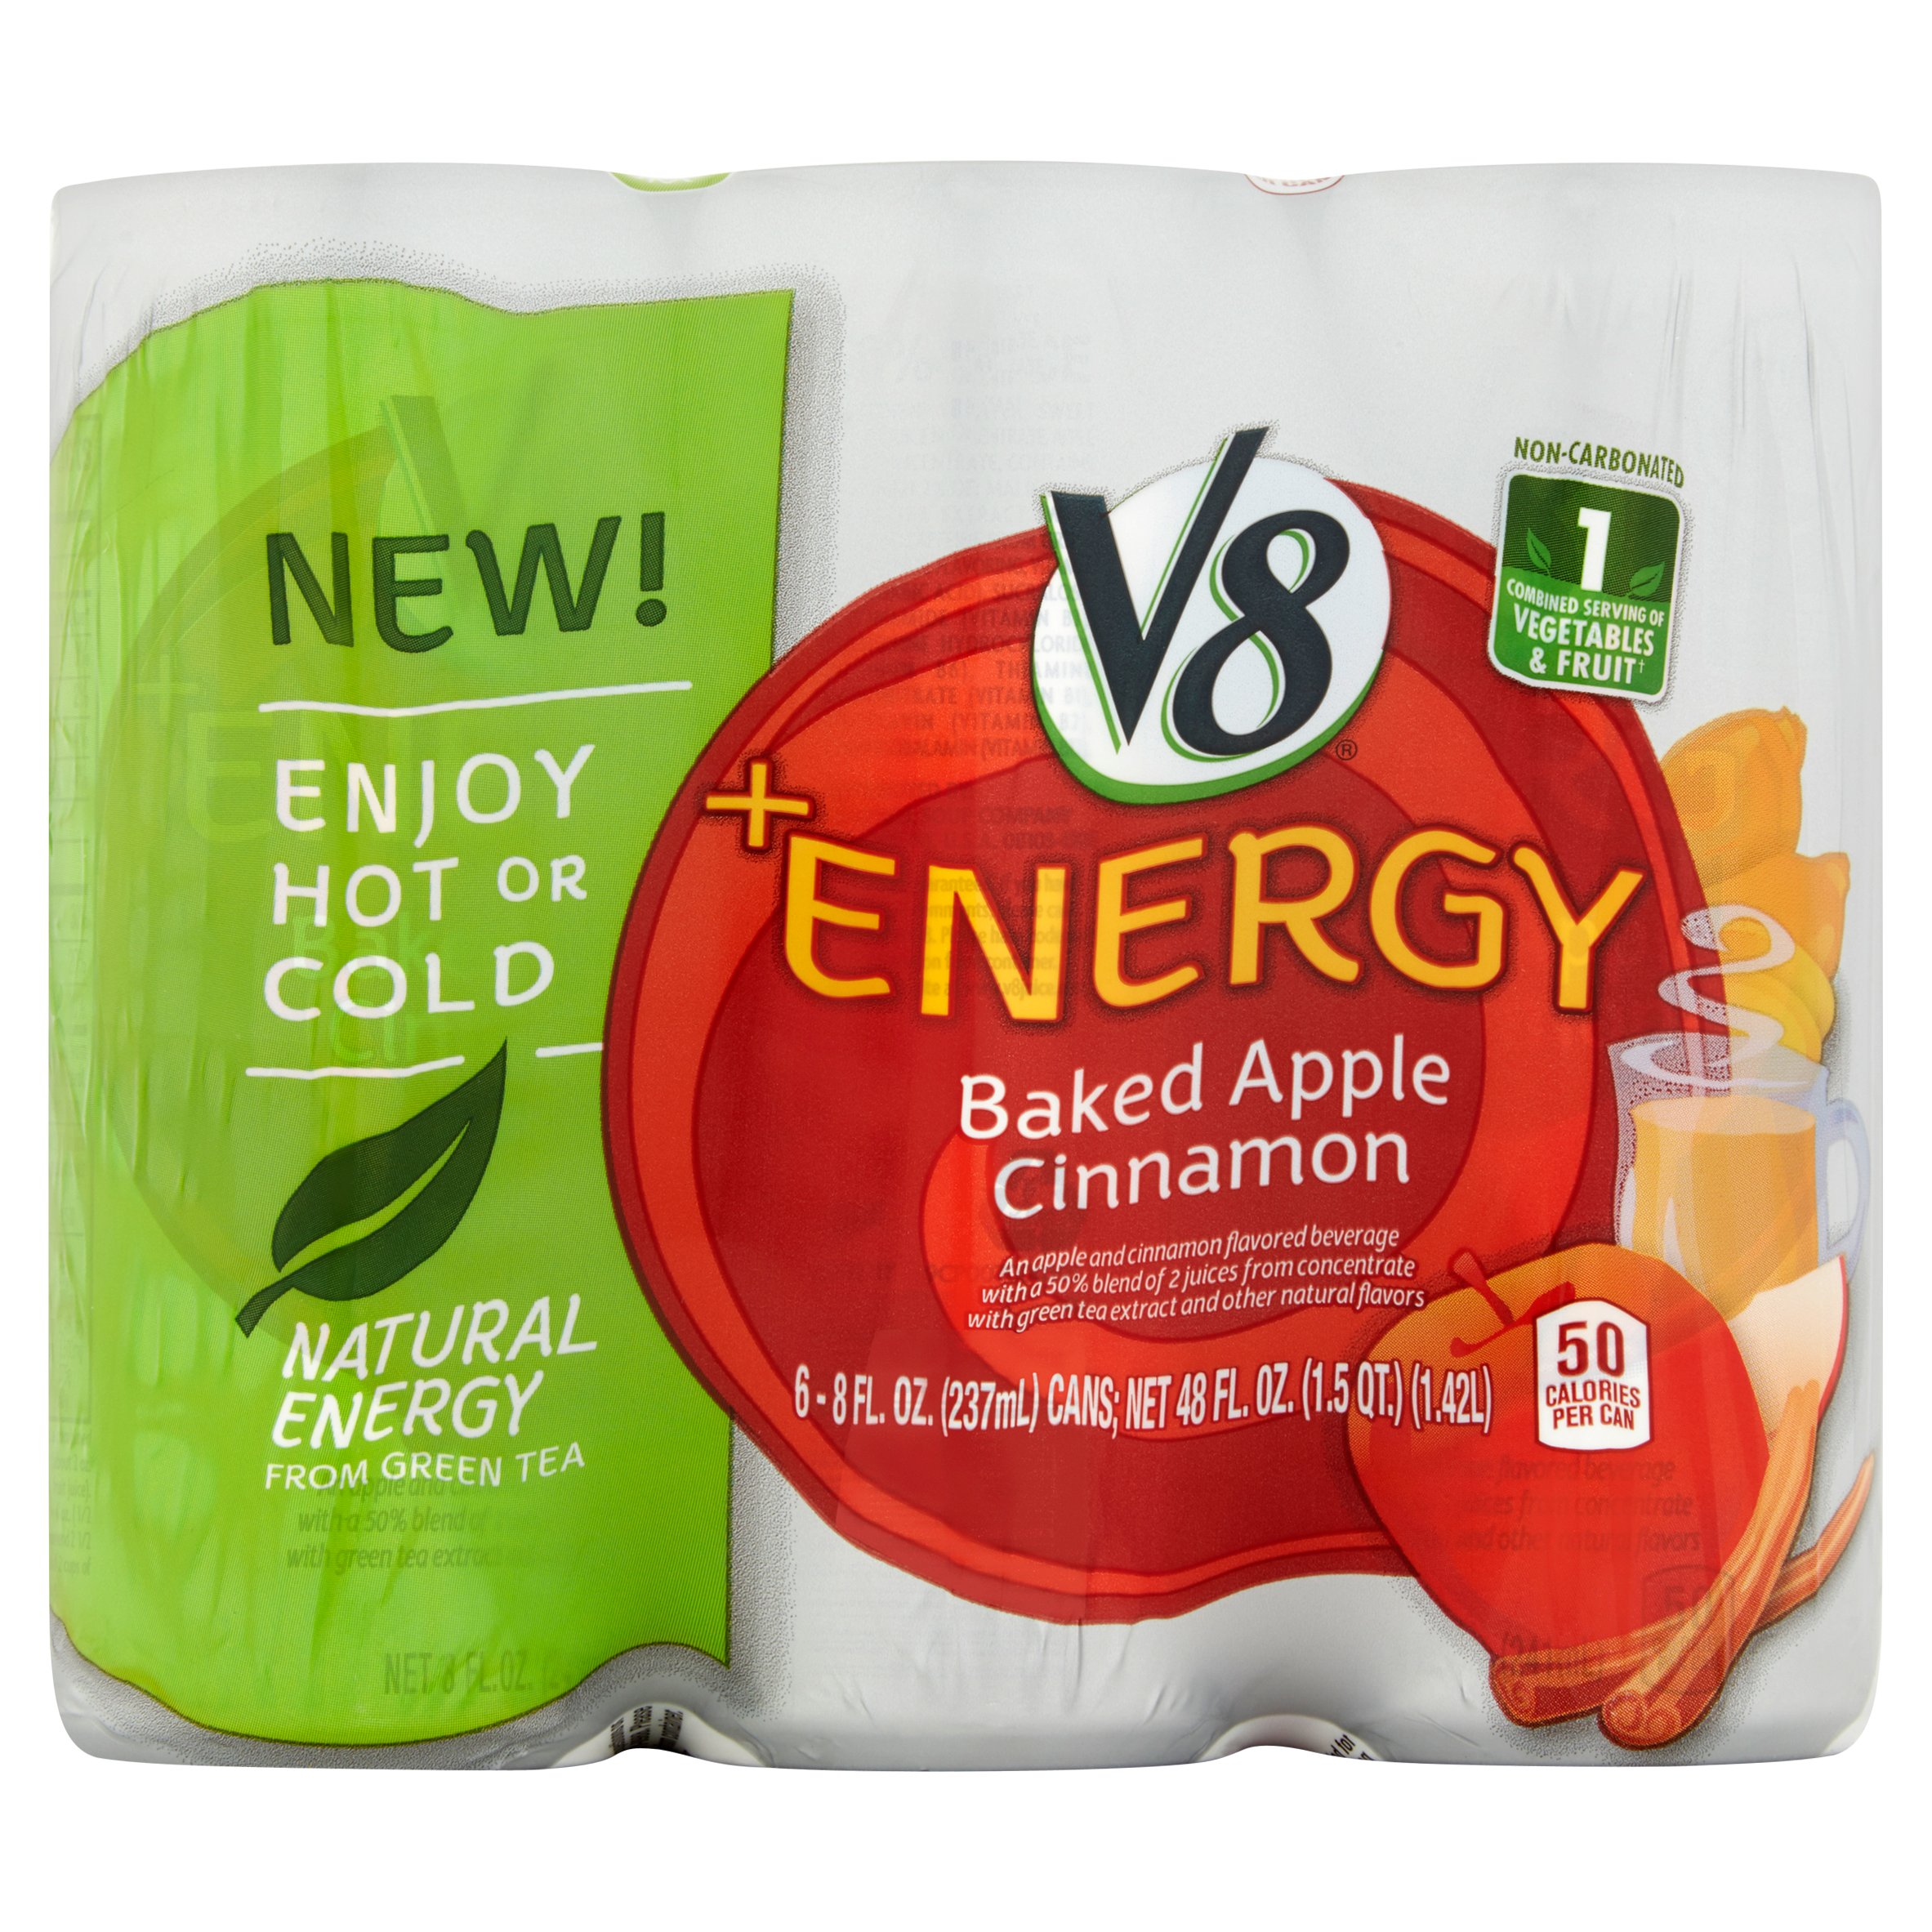 V8 +Energy Baked Apple Cinnamon Juice 8oz 6 pack by Campbell Soup Company